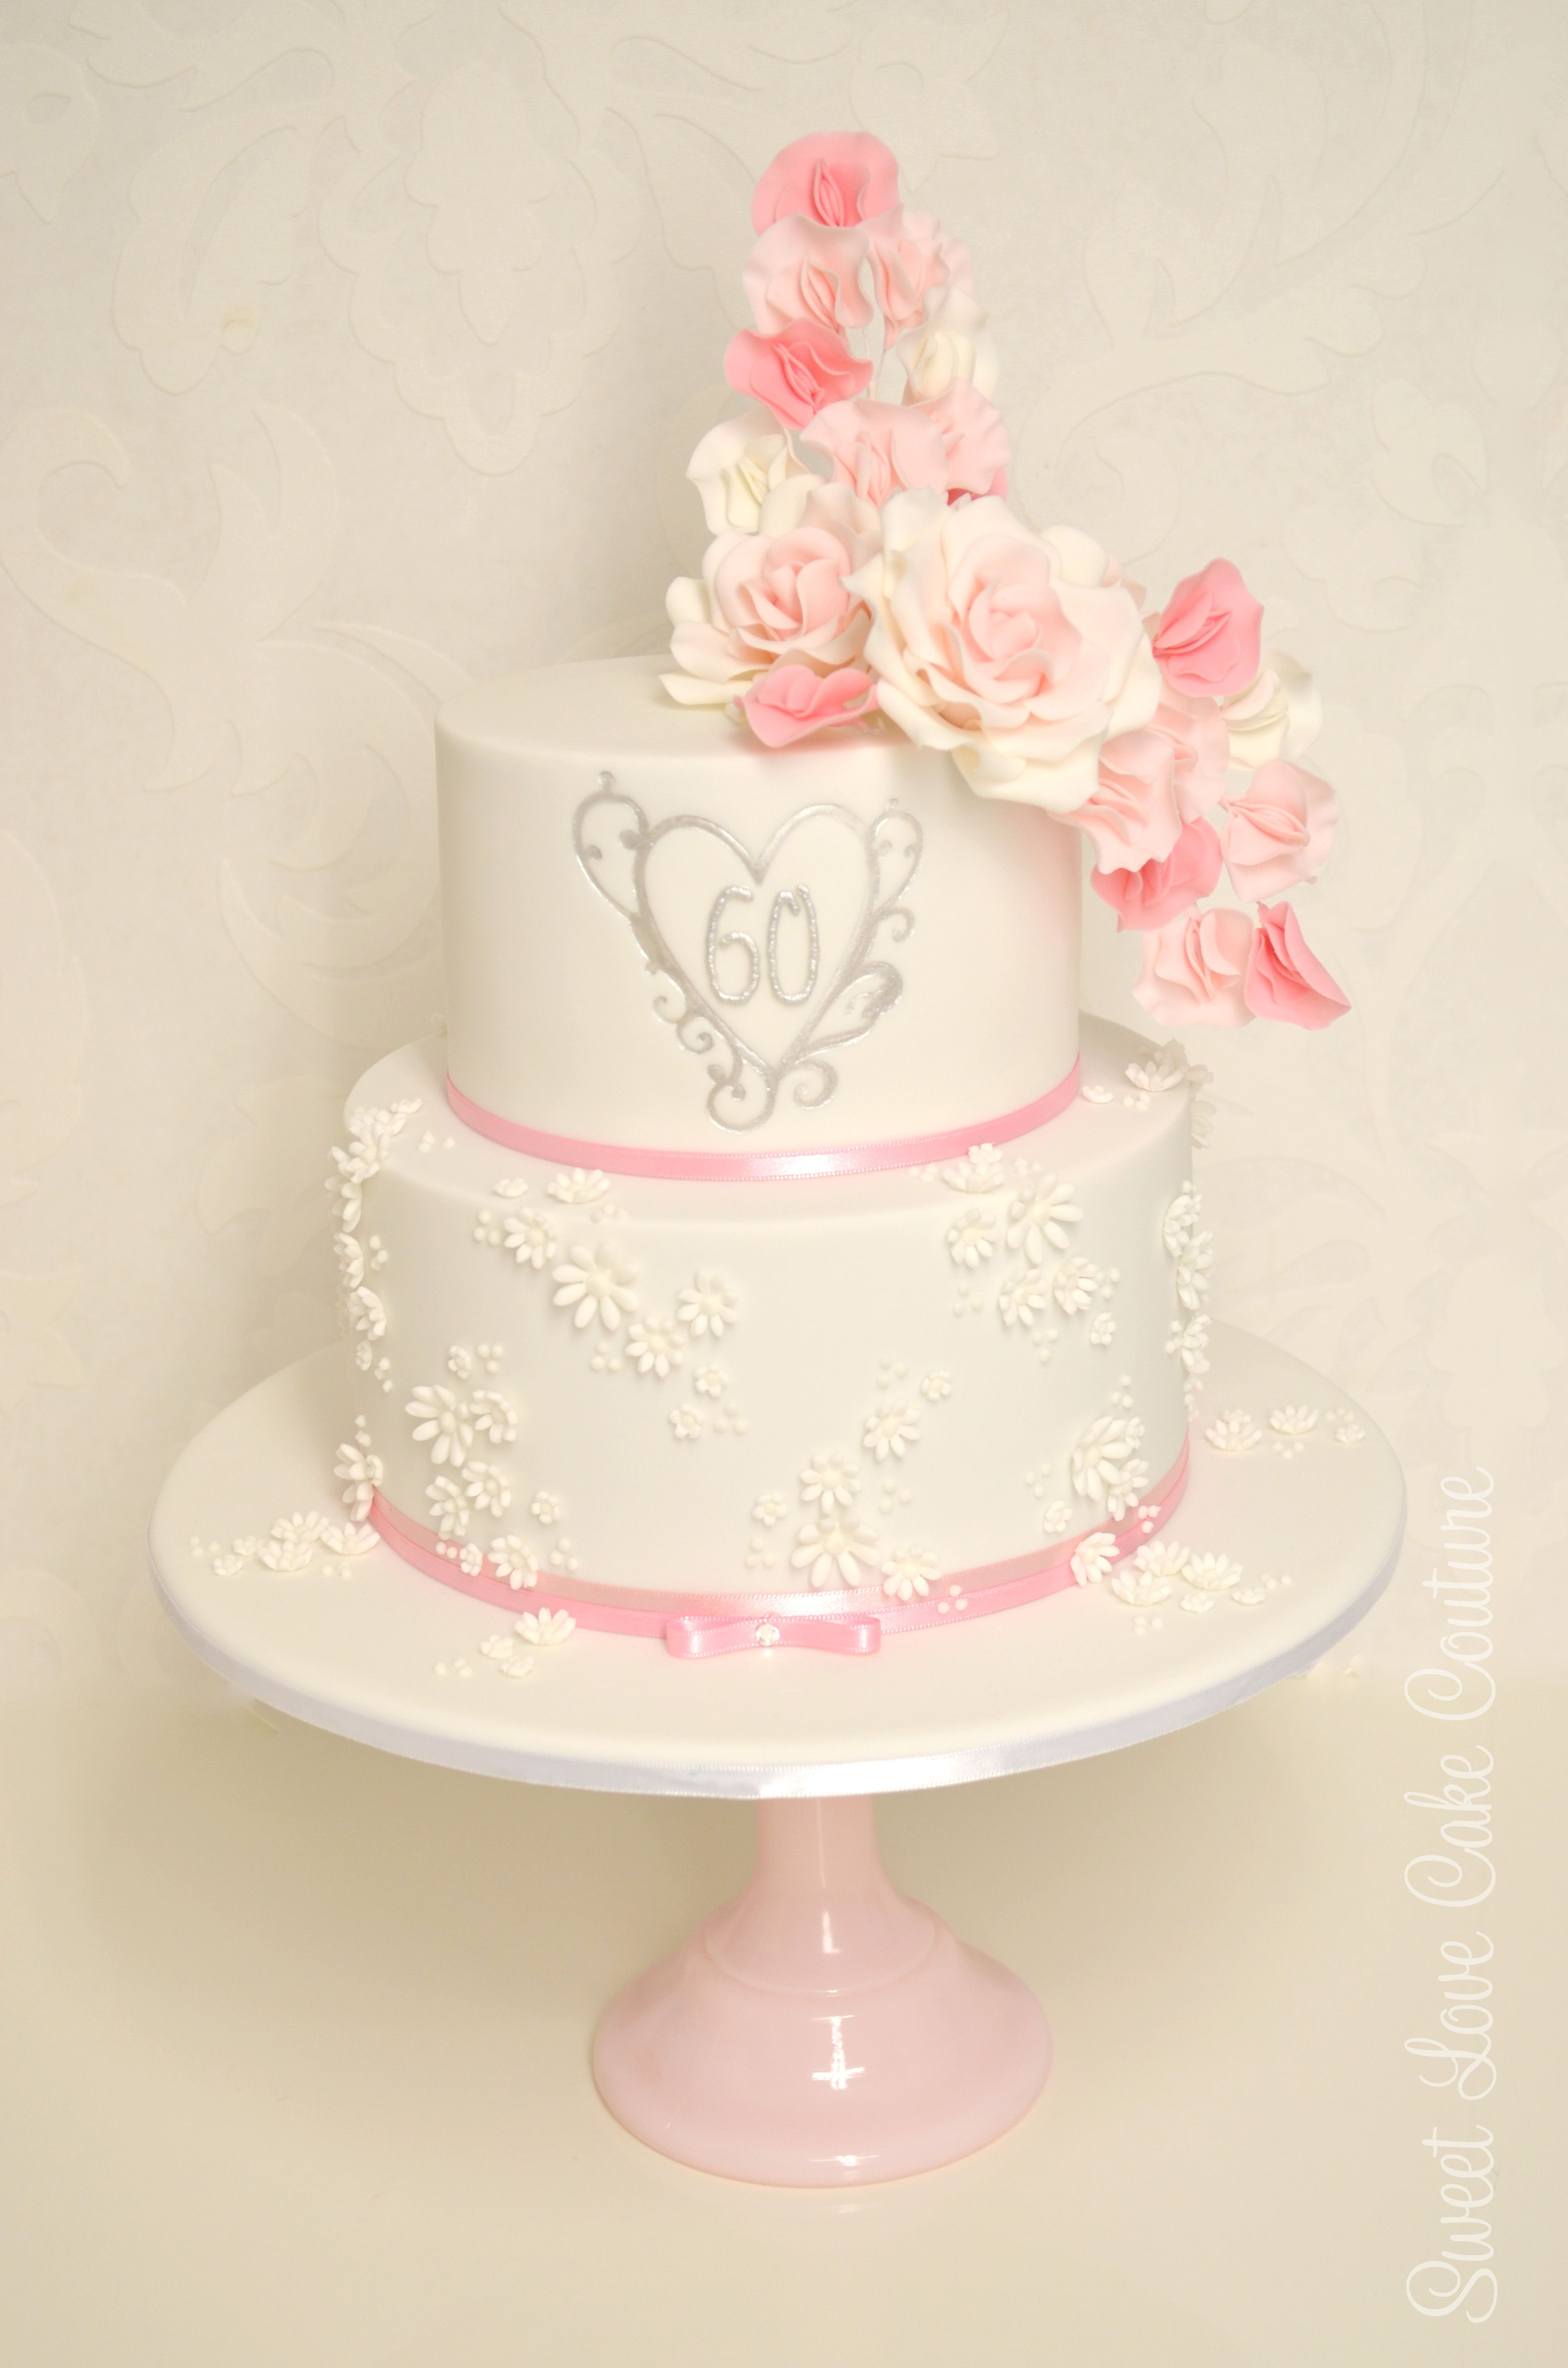 60th Anniversary Cake Cakes by Sweet Love Cake Couture ...